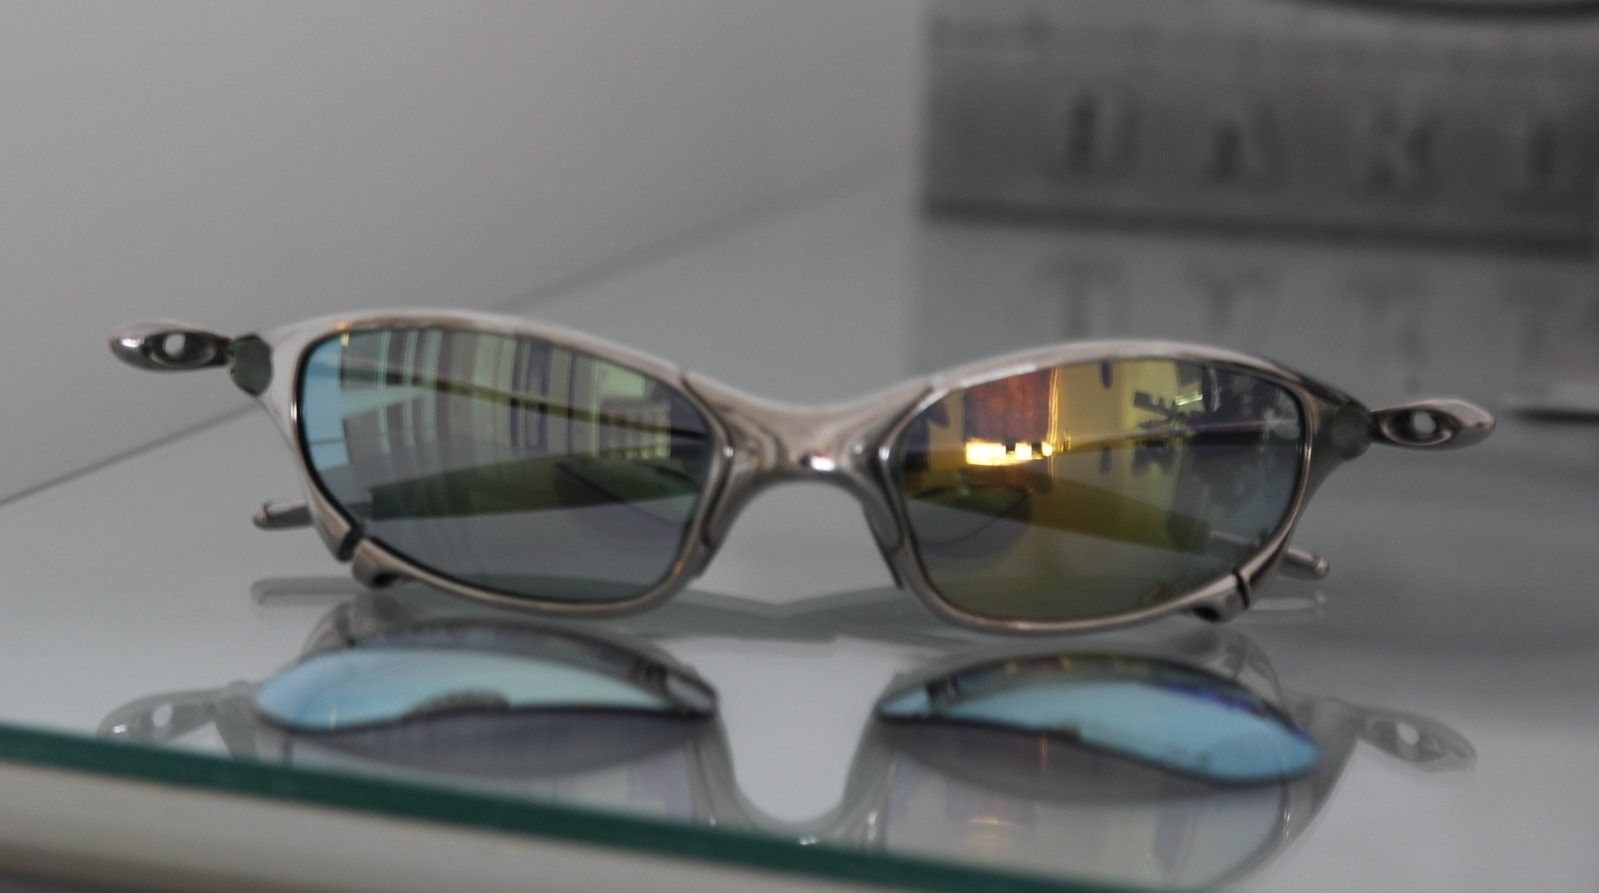 Emerald Slate Lenses / Difference between tints - IMG_8245 - Edited.jpg